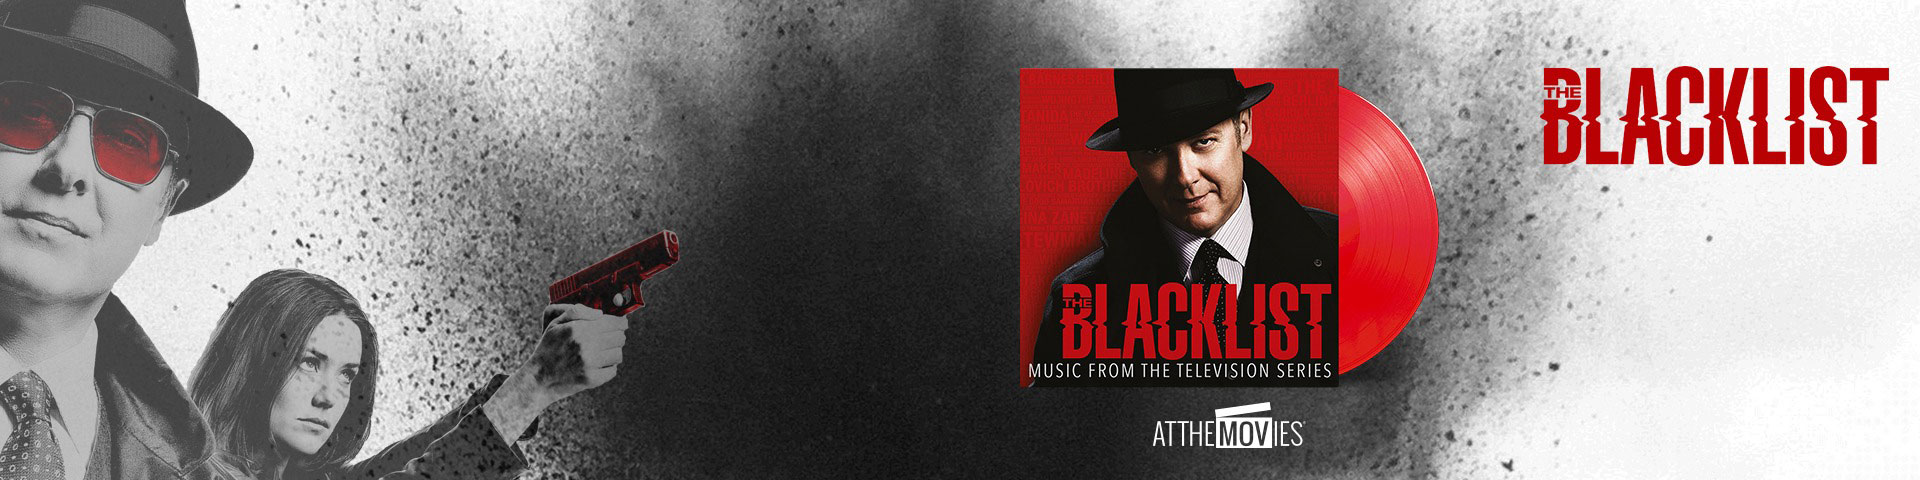 ORIGINAL SOUNDTRACK - THE BLACKLIST